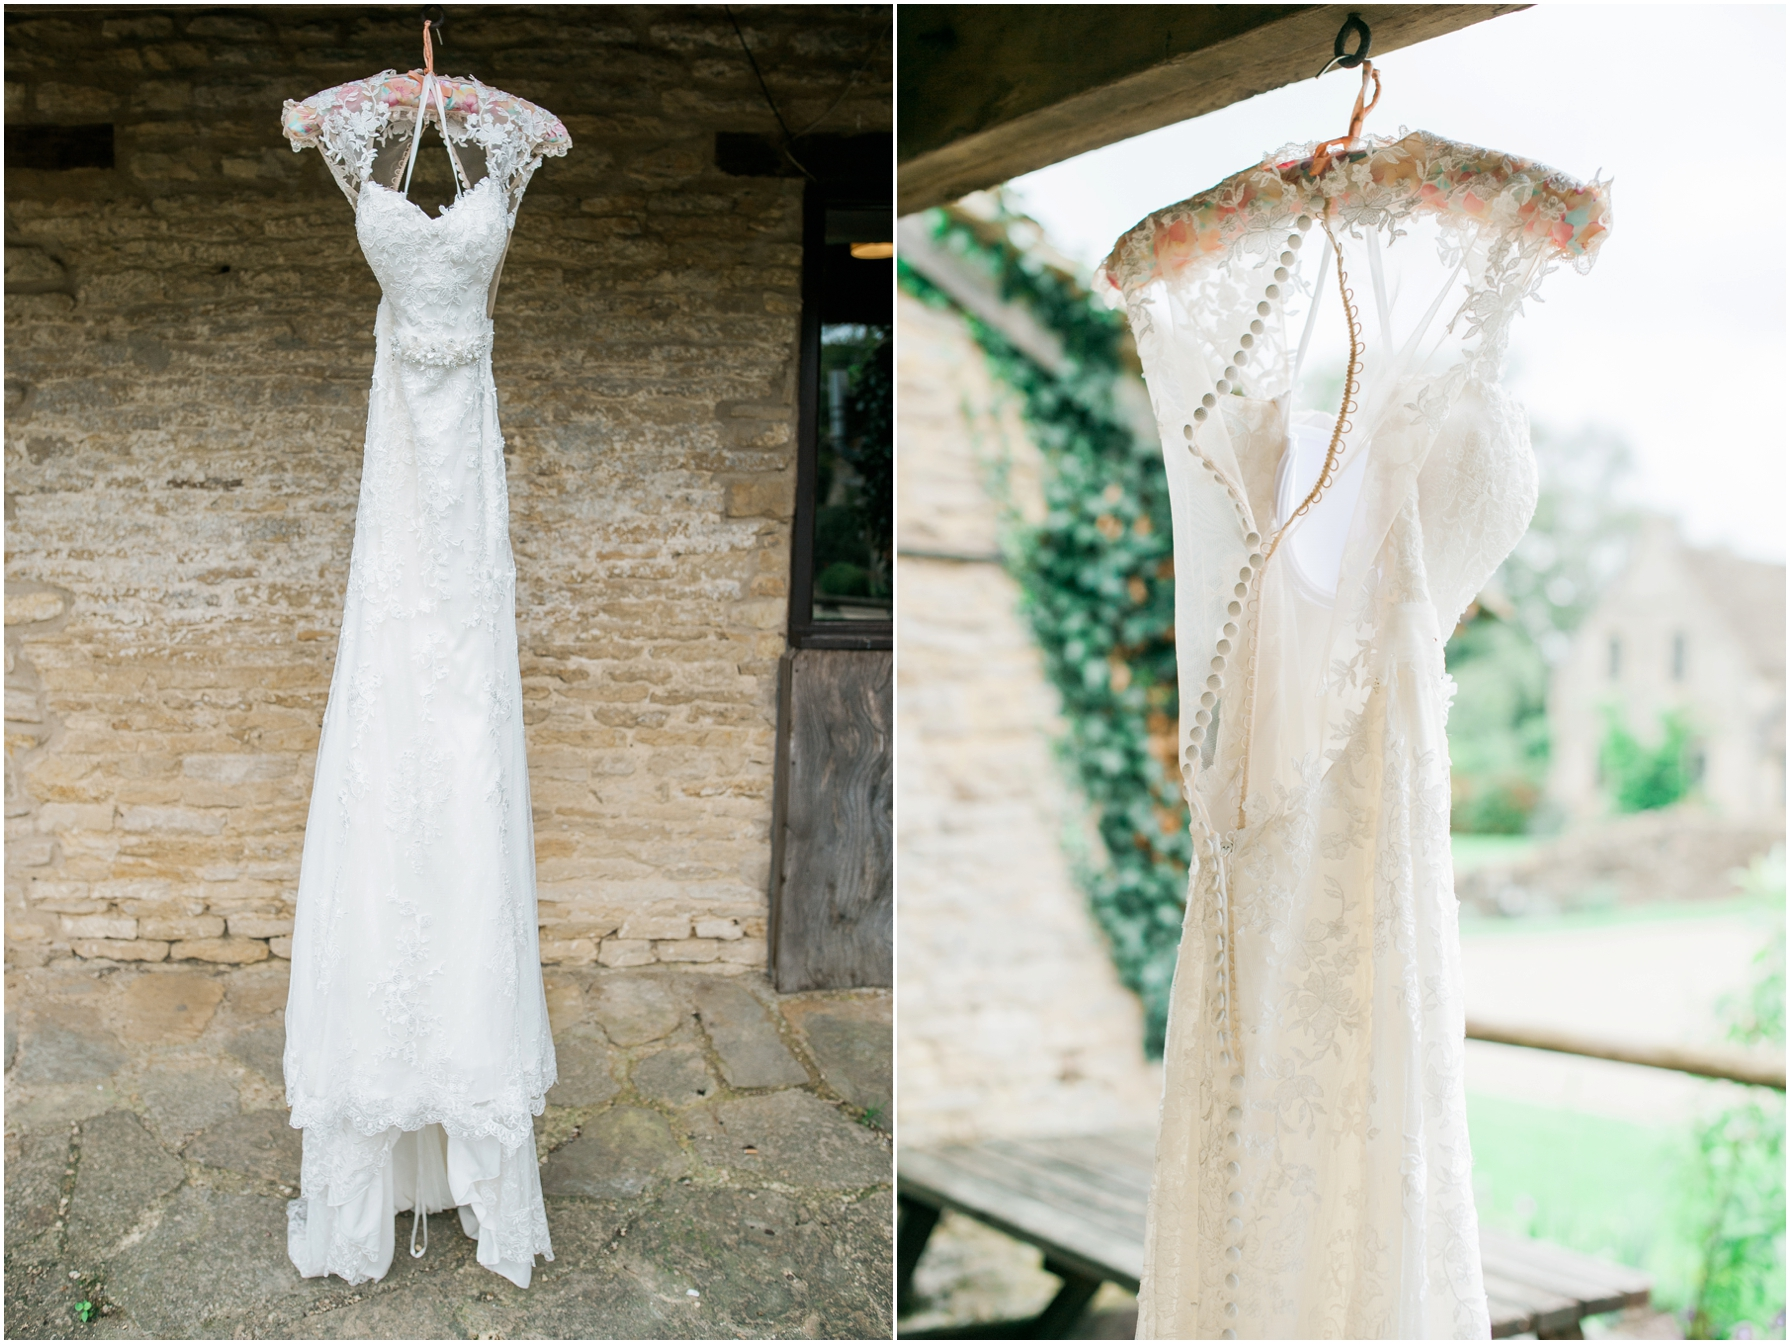 All about Eve bridal lace back dress hanging up outside the bridal suite at the great tythe barn